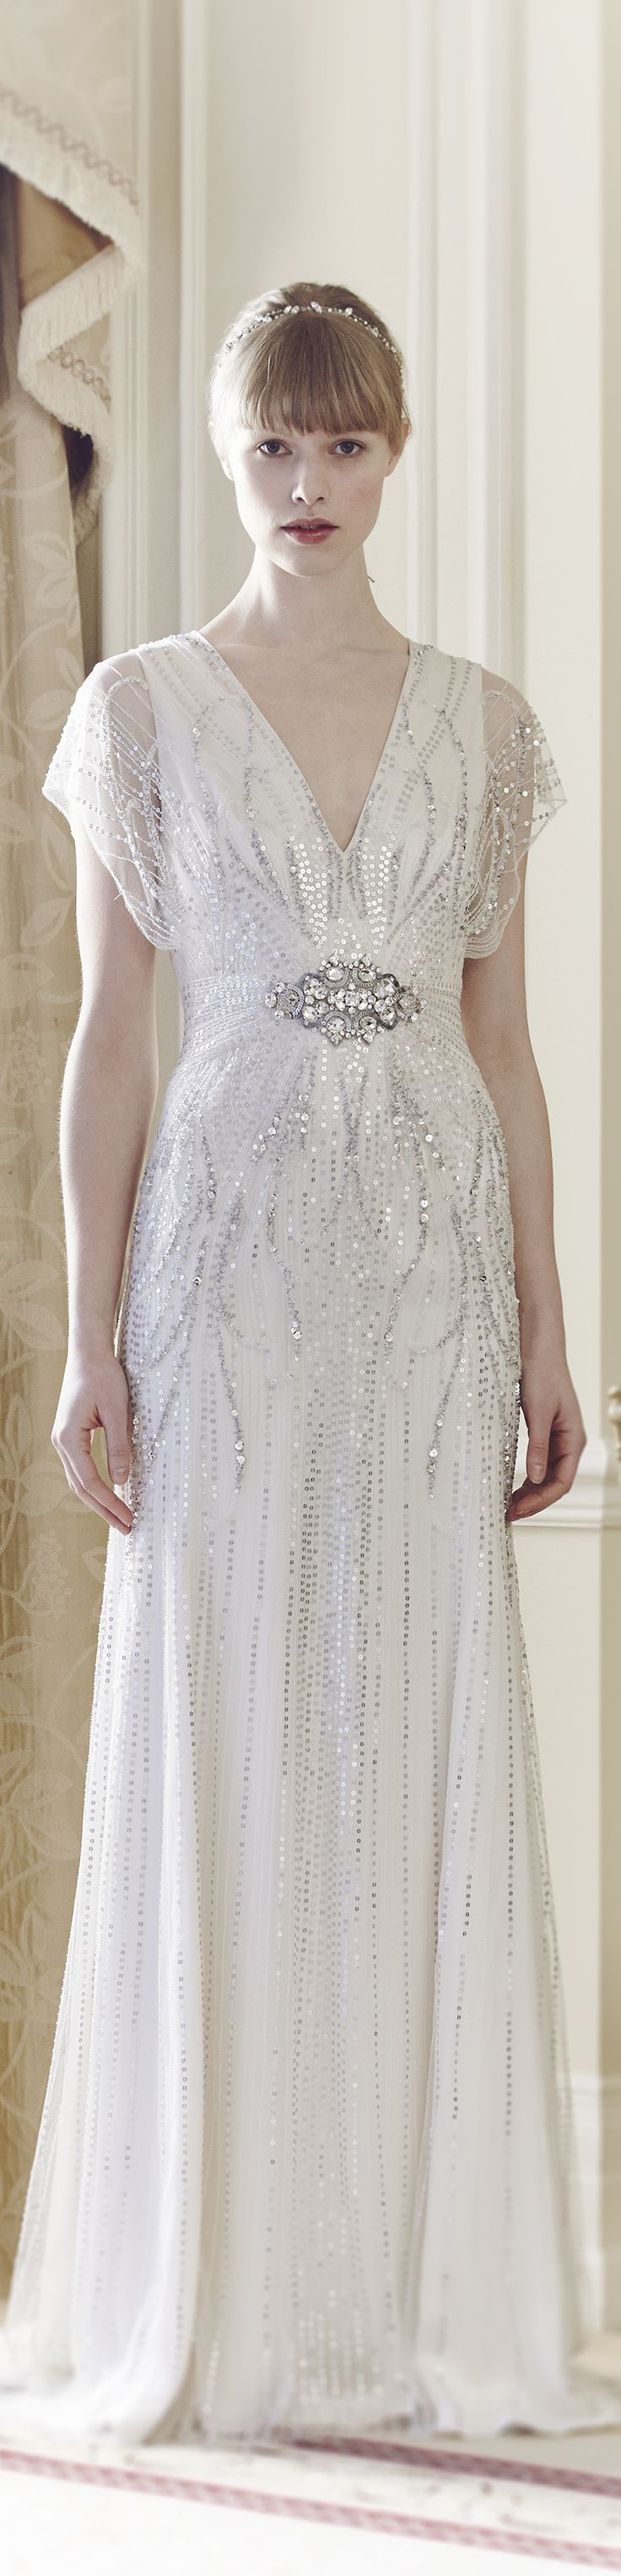 Jenny Packham Bridal Collection 2014 - Florence